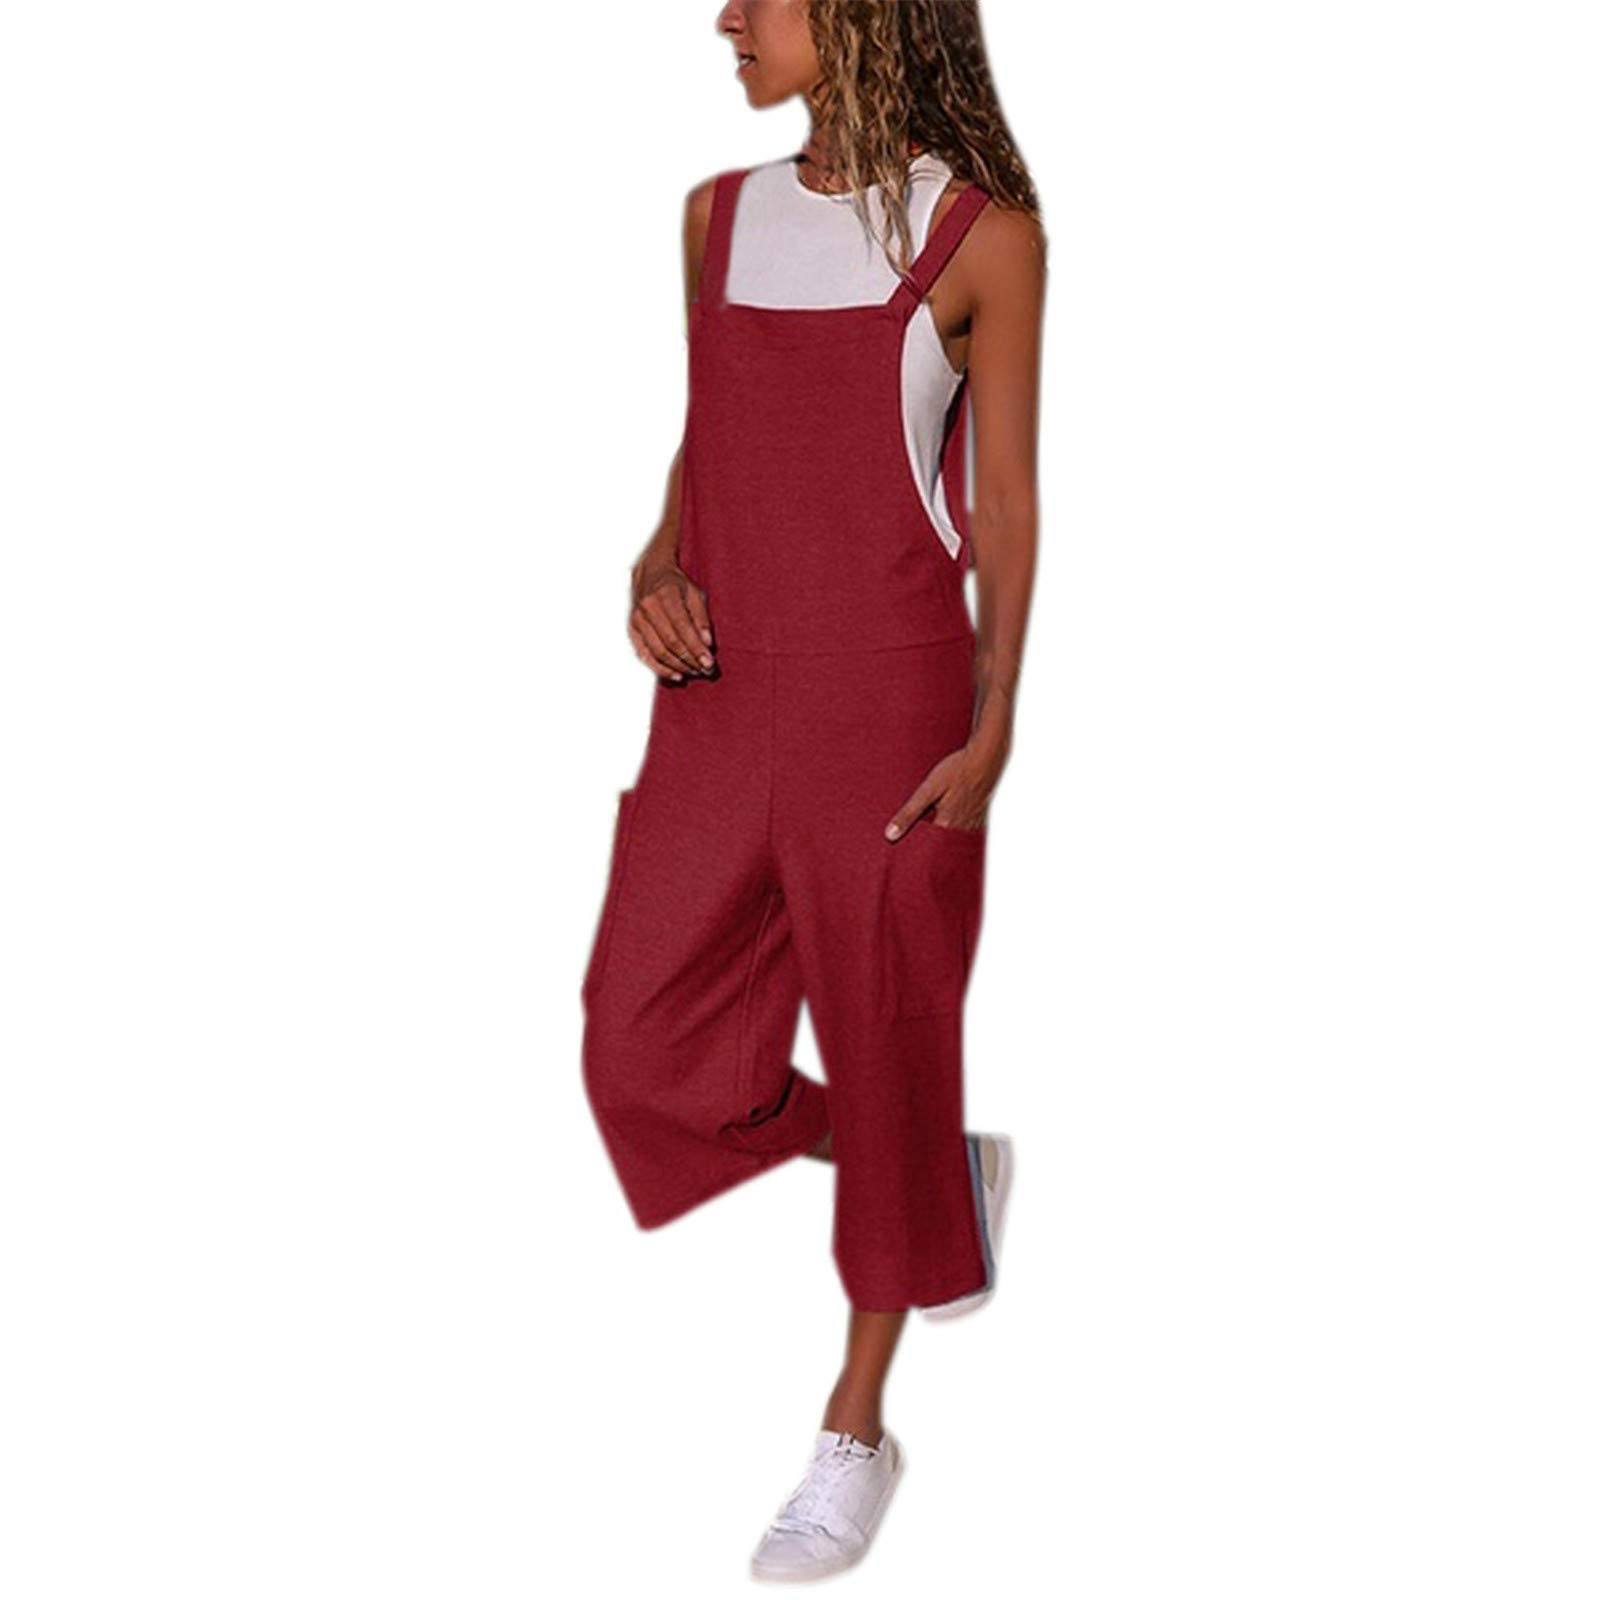 Thenxin Womens Baggy Bib Overalls Long Pants Wide Leg Rompers Jumpsuit Dungarees with Pockets(Wine,M)